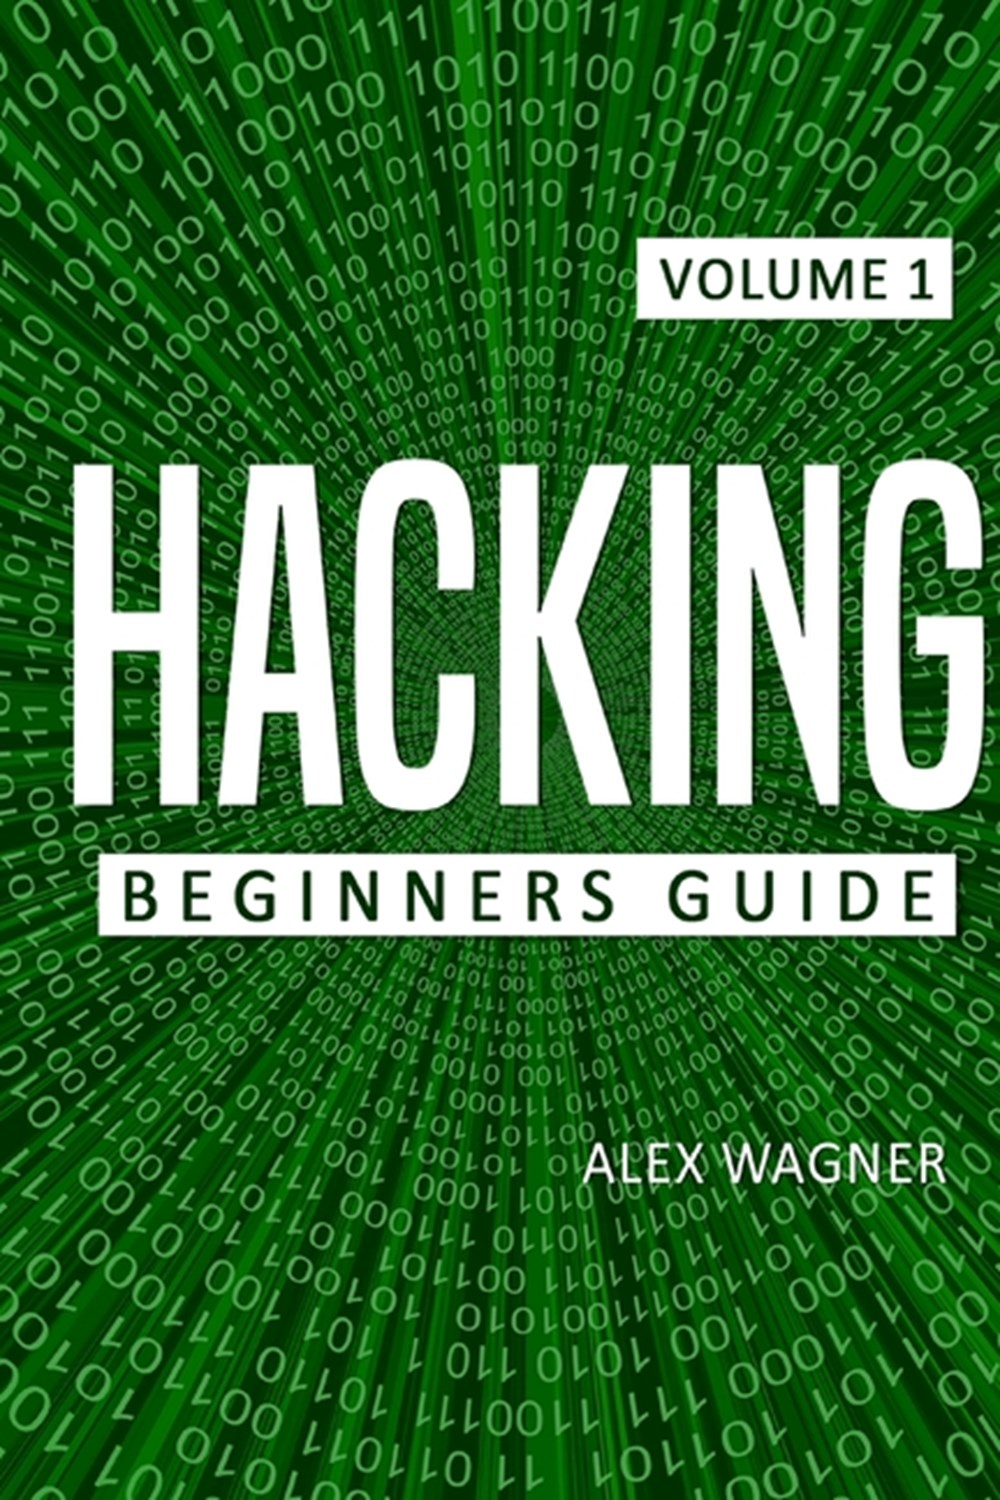 Hacking 17 Must Tools Every Hacker Should Have